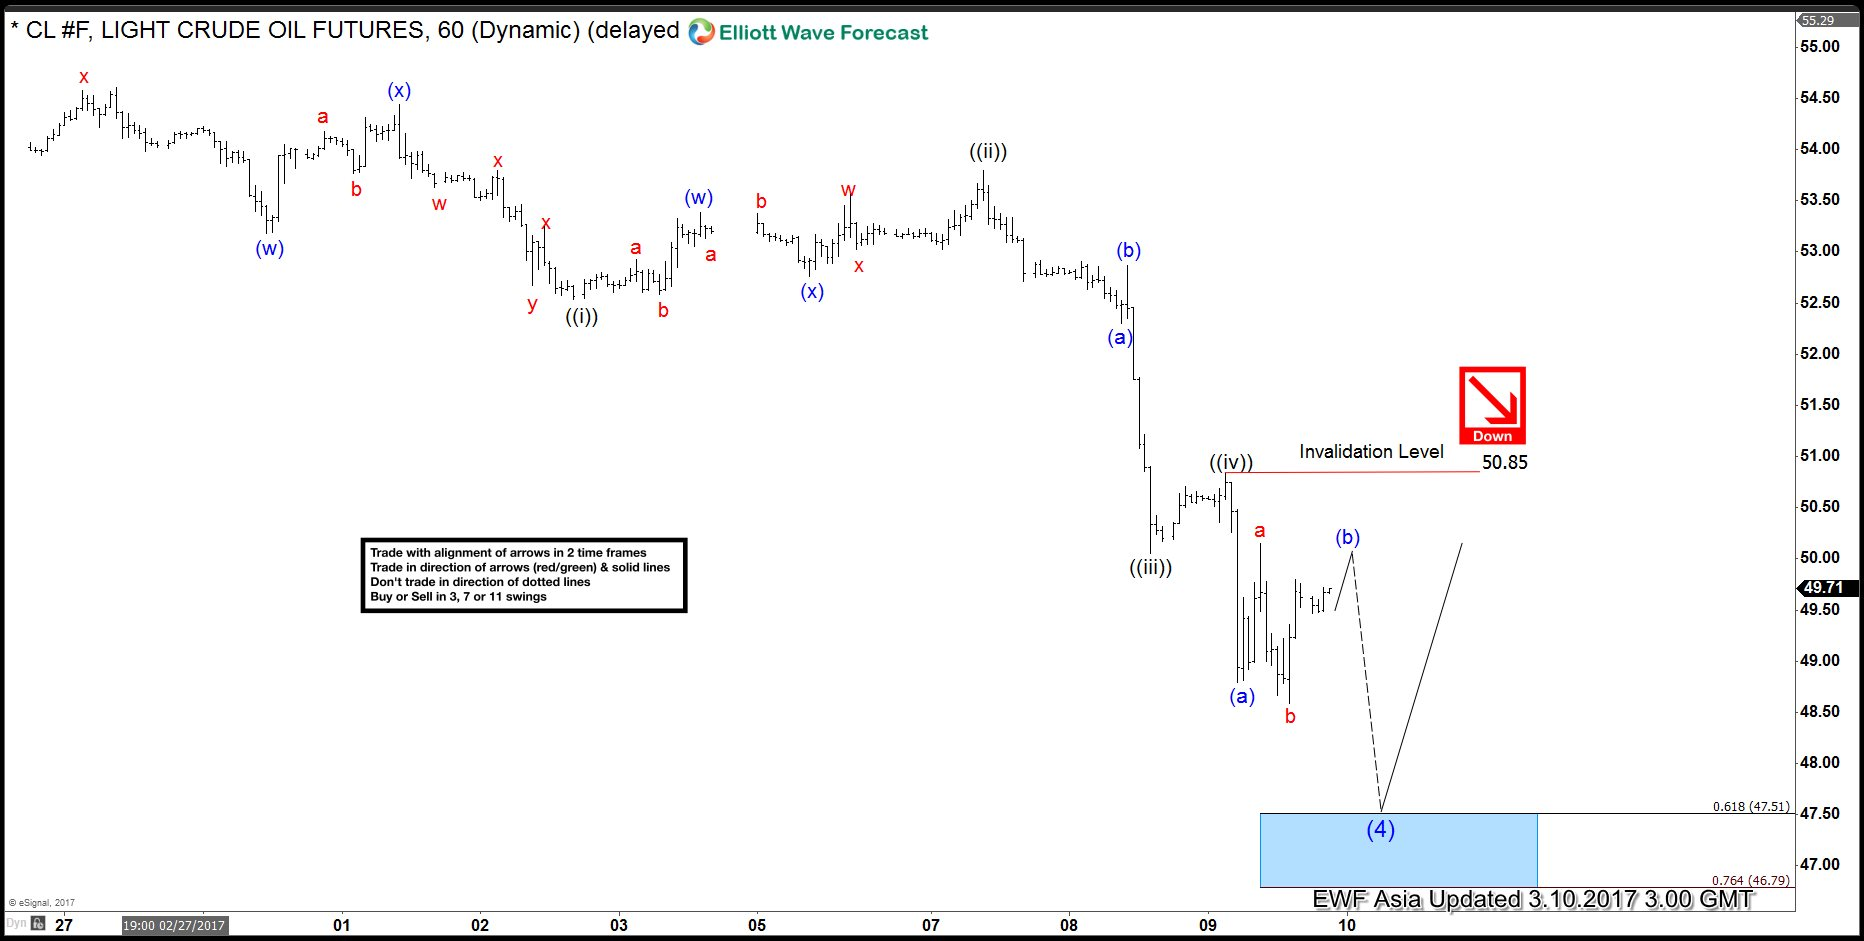 CL_F Elliott Wave View: Bounce expected soon